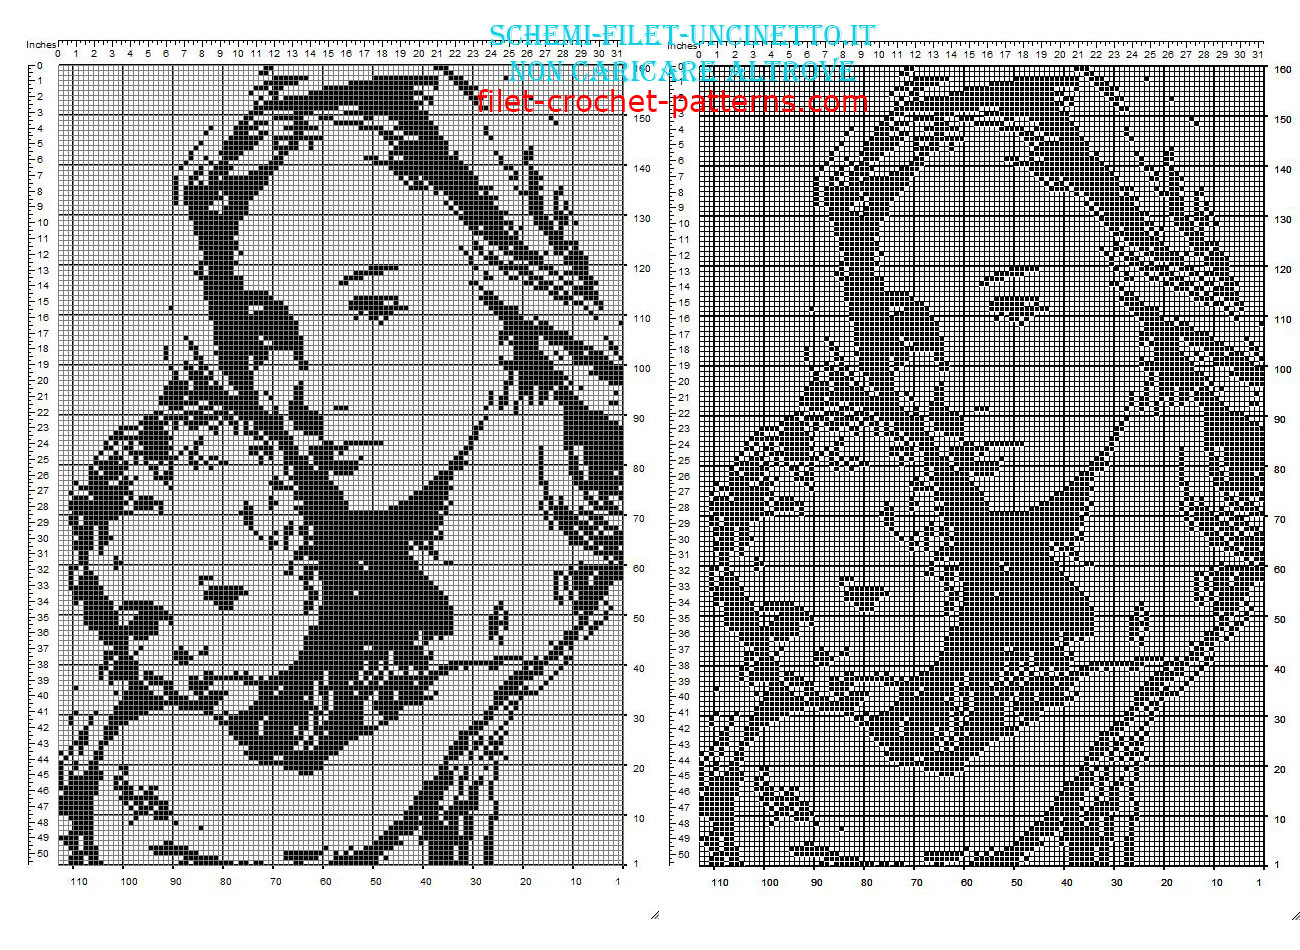 Blessed Virgin Mary and child free filet crochet pattern 160 x 110 squares